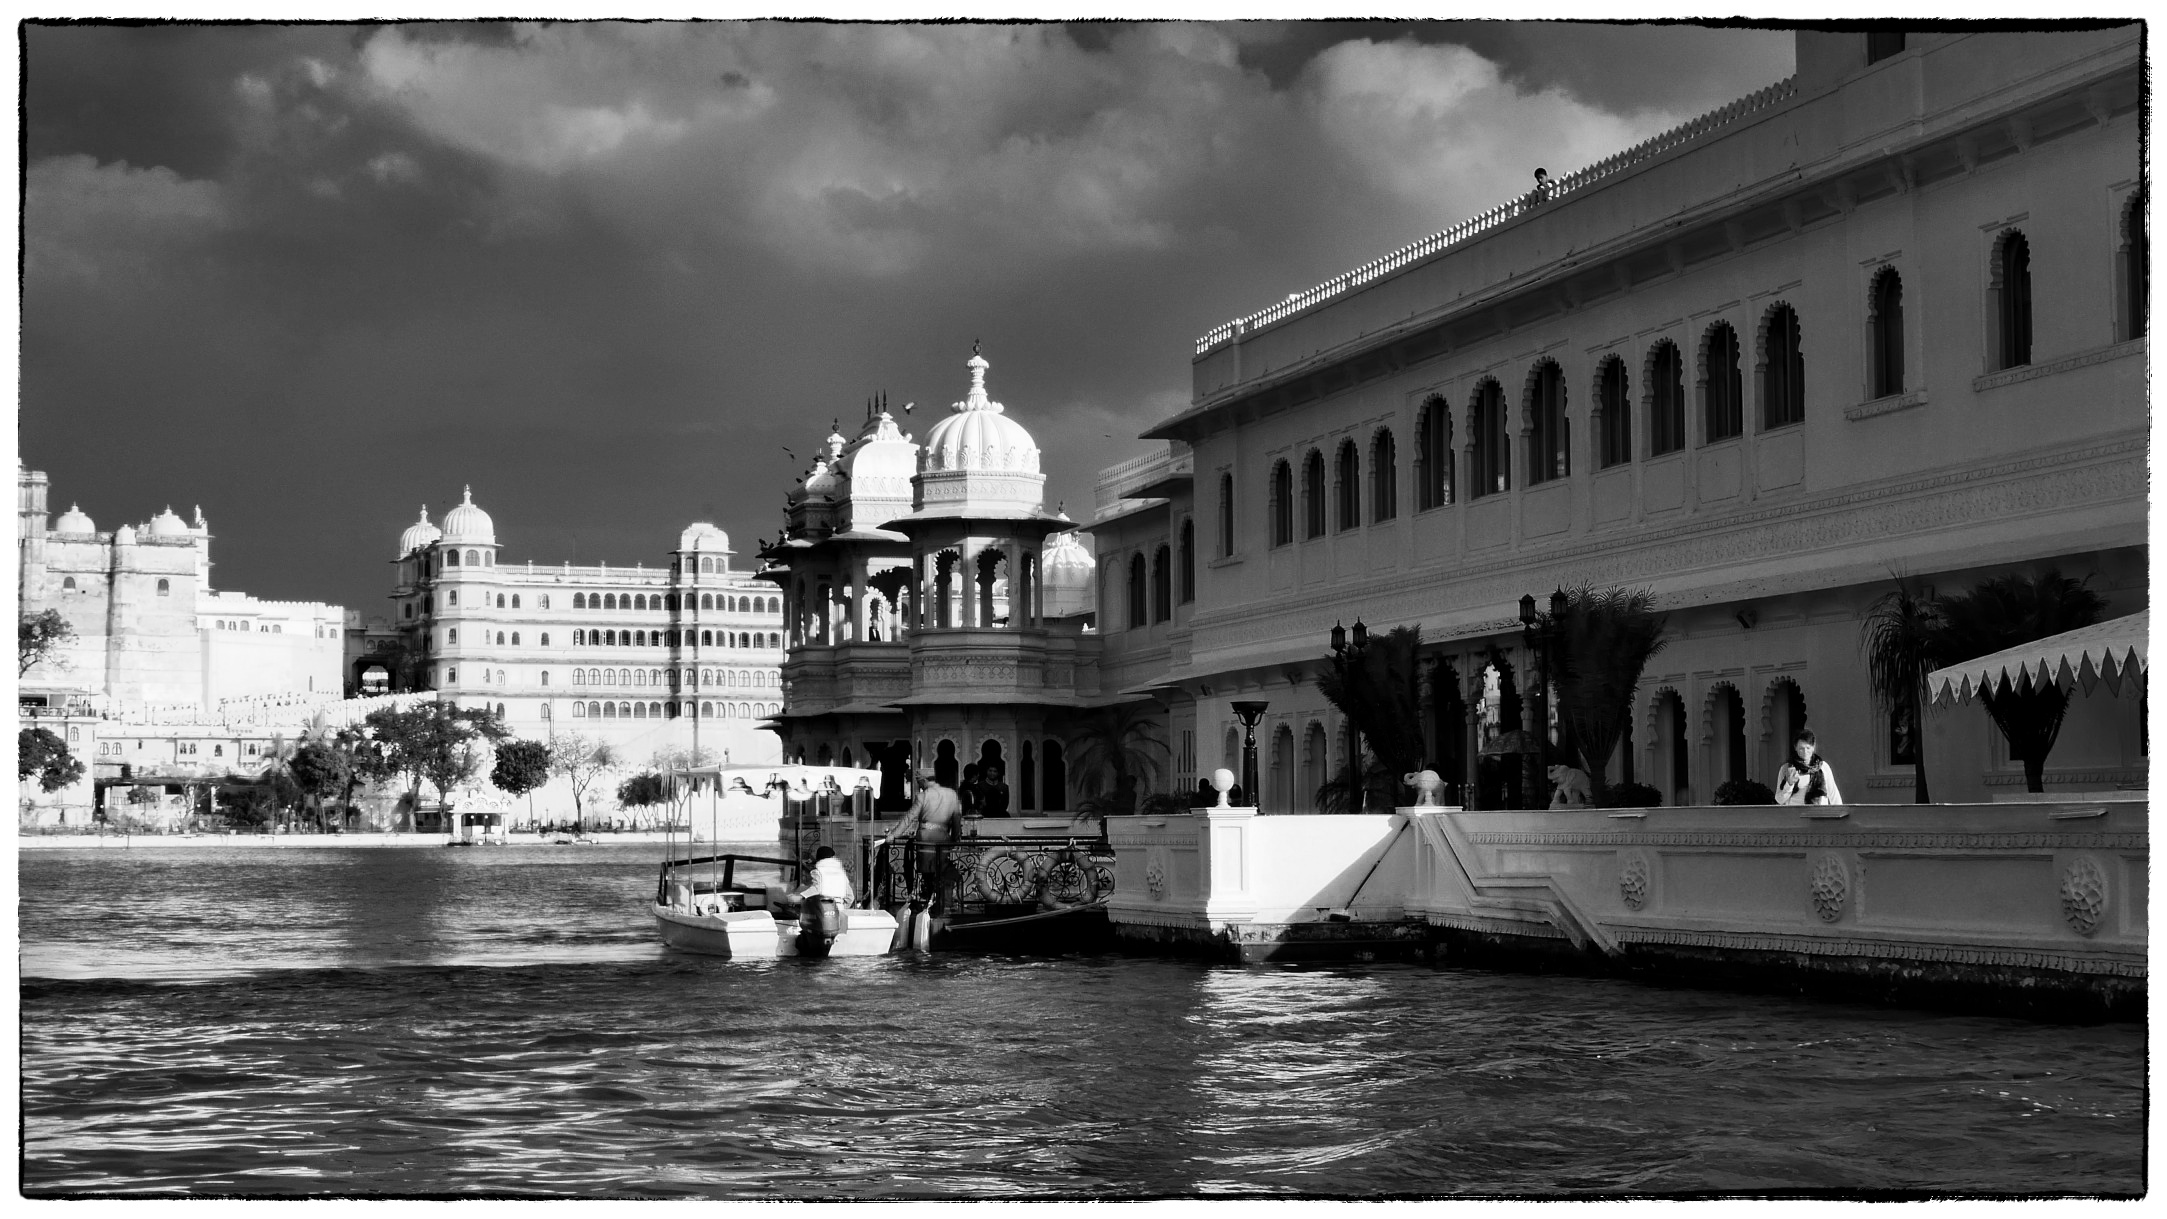 The Lake Palace Hotel, Udaipur with City Palace beyond (Lumix GM1, Leica 25mm)